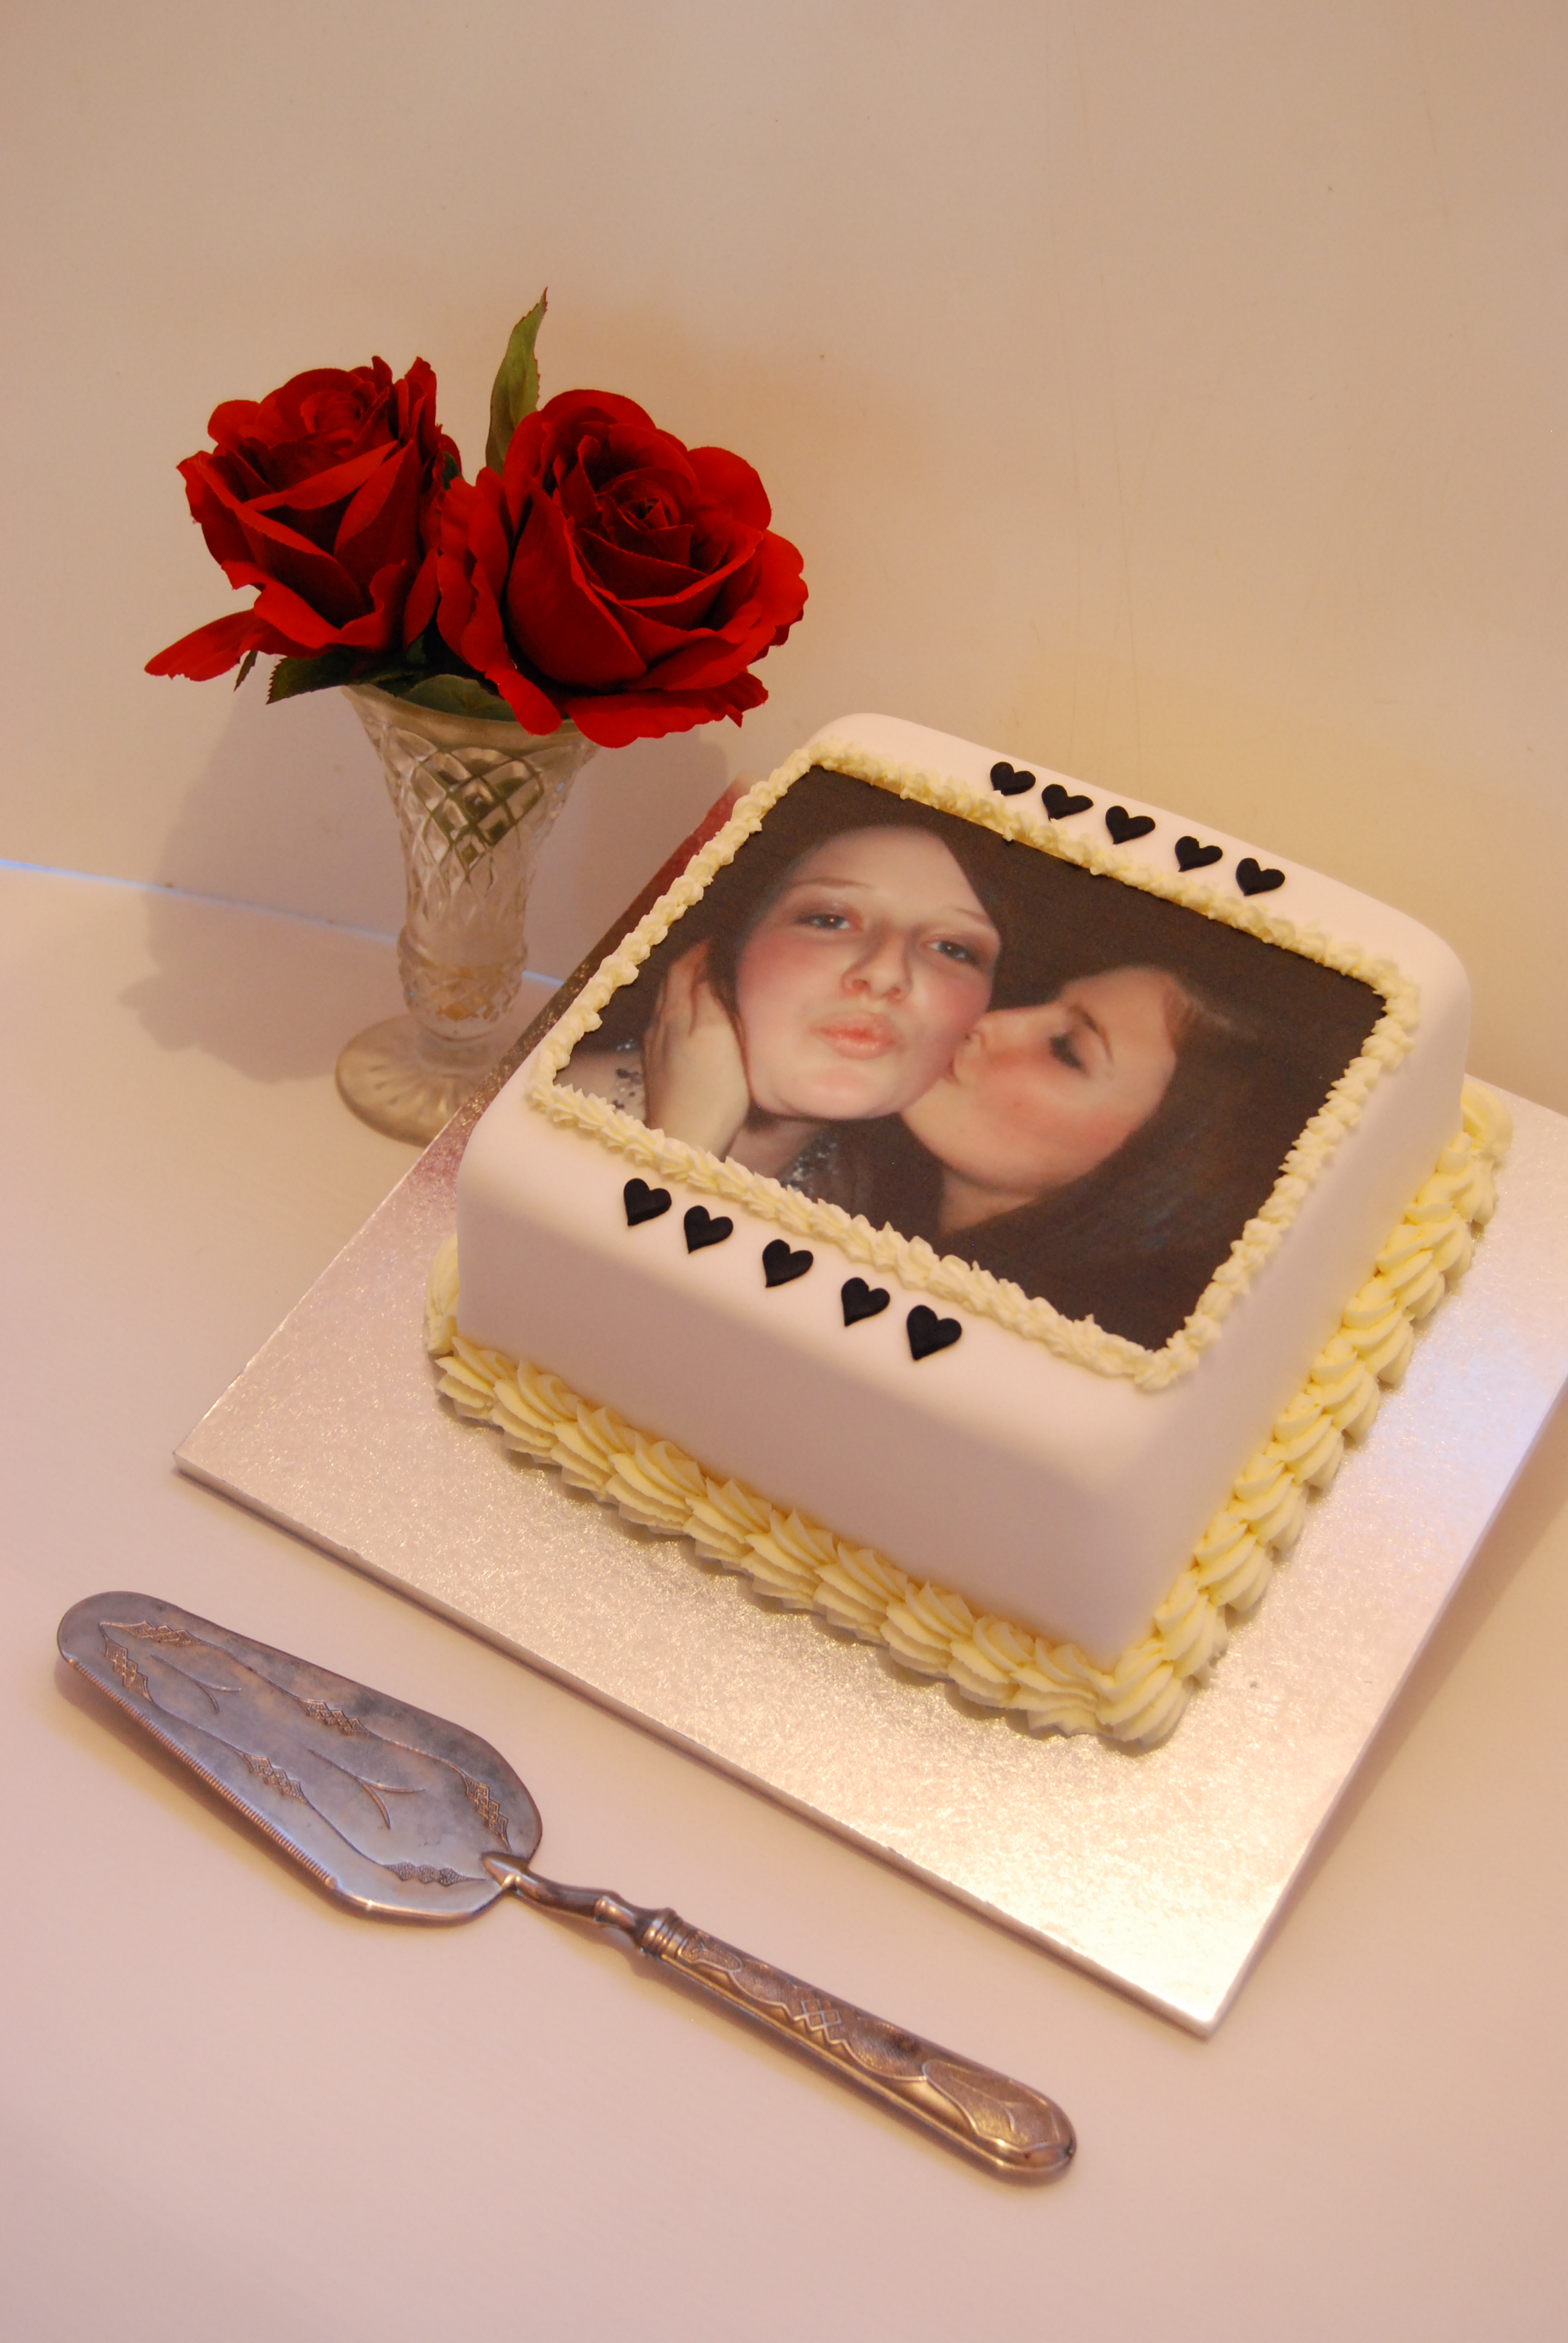 Cake Edible Images Nz : Edible Image Cake USD139   Temptation Cakes Temptation Cakes